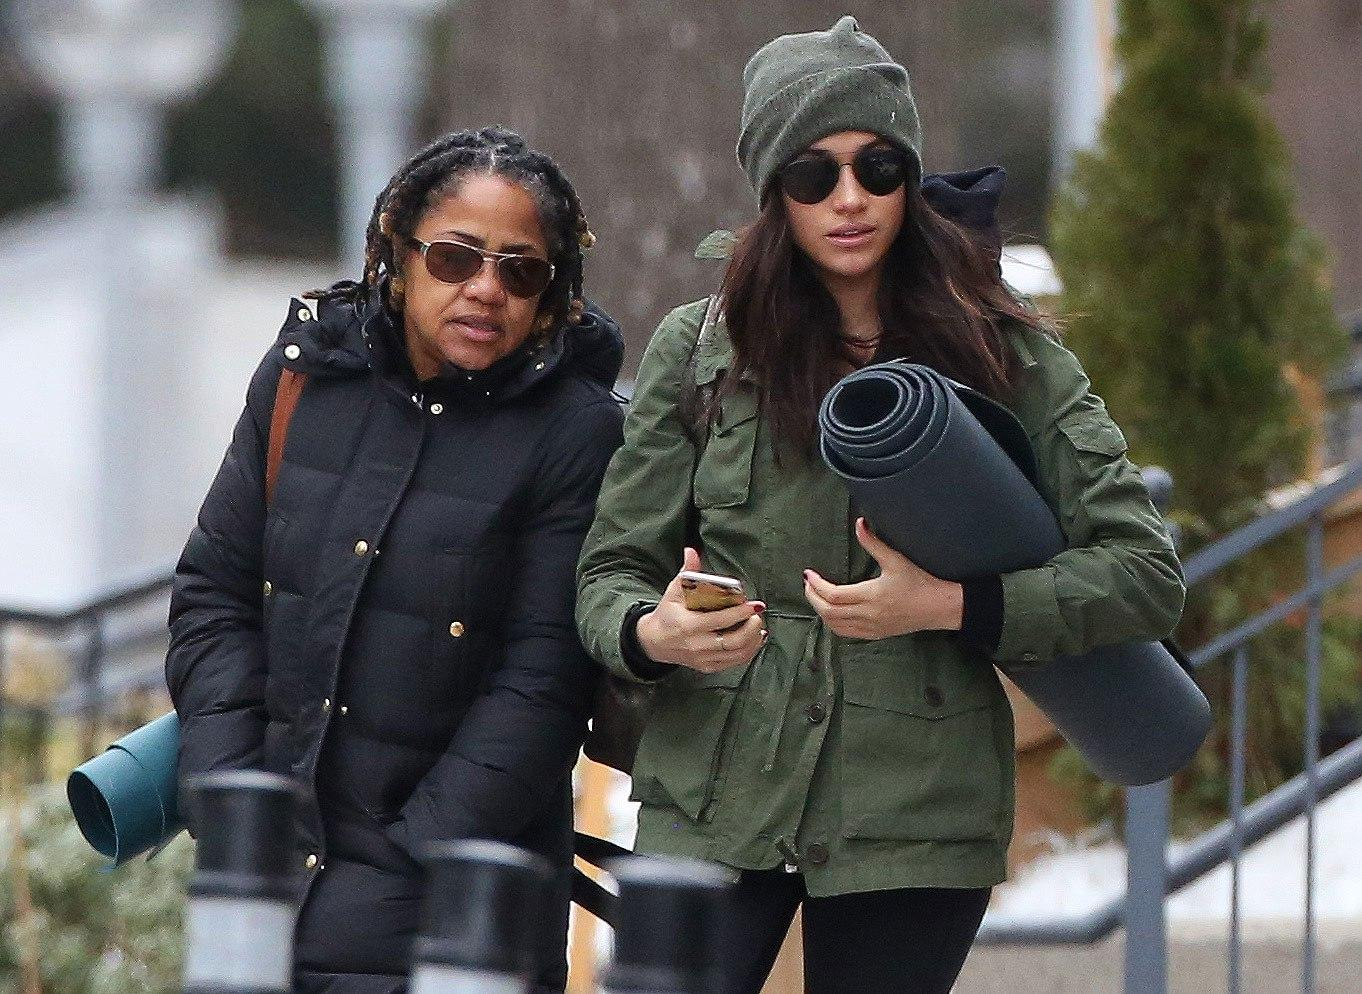 Photos: Meghan Markle Steps Out for Post-Christmas Yoga with Her Mom